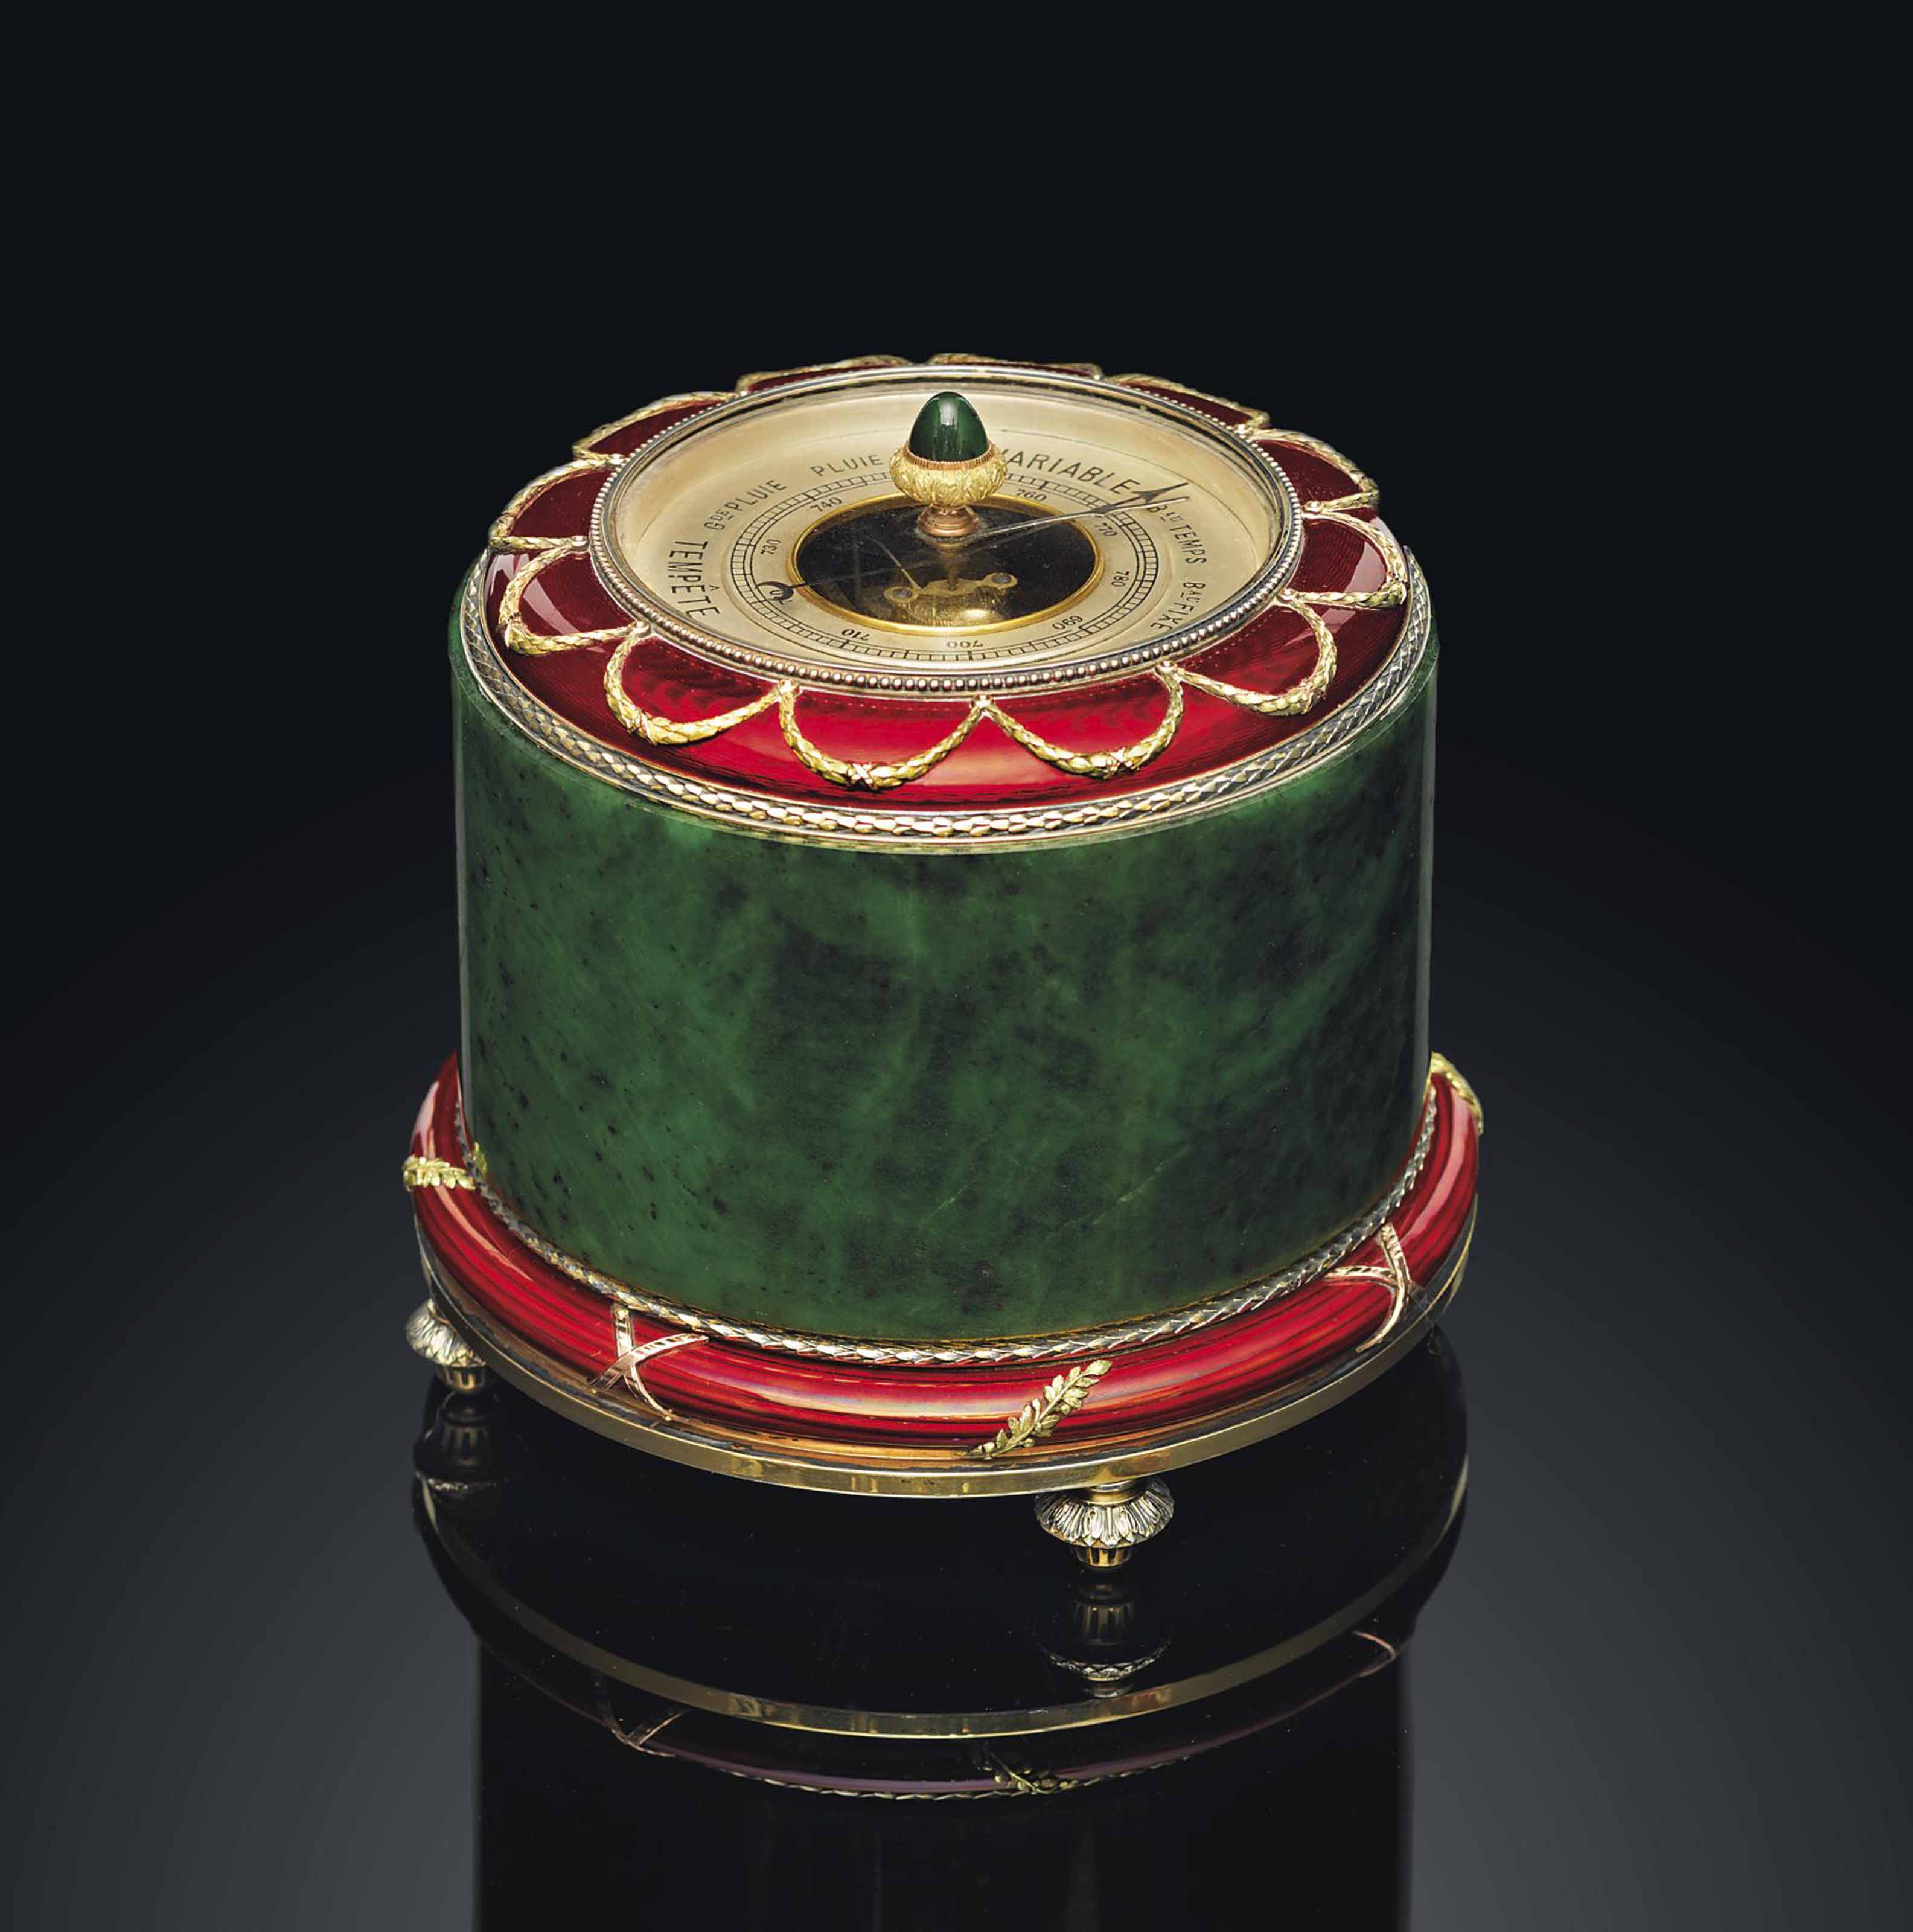 A SILVER-GILT, NEPHRITE AND GUILLOCHÉ ENAMEL TABLE BAROMETER